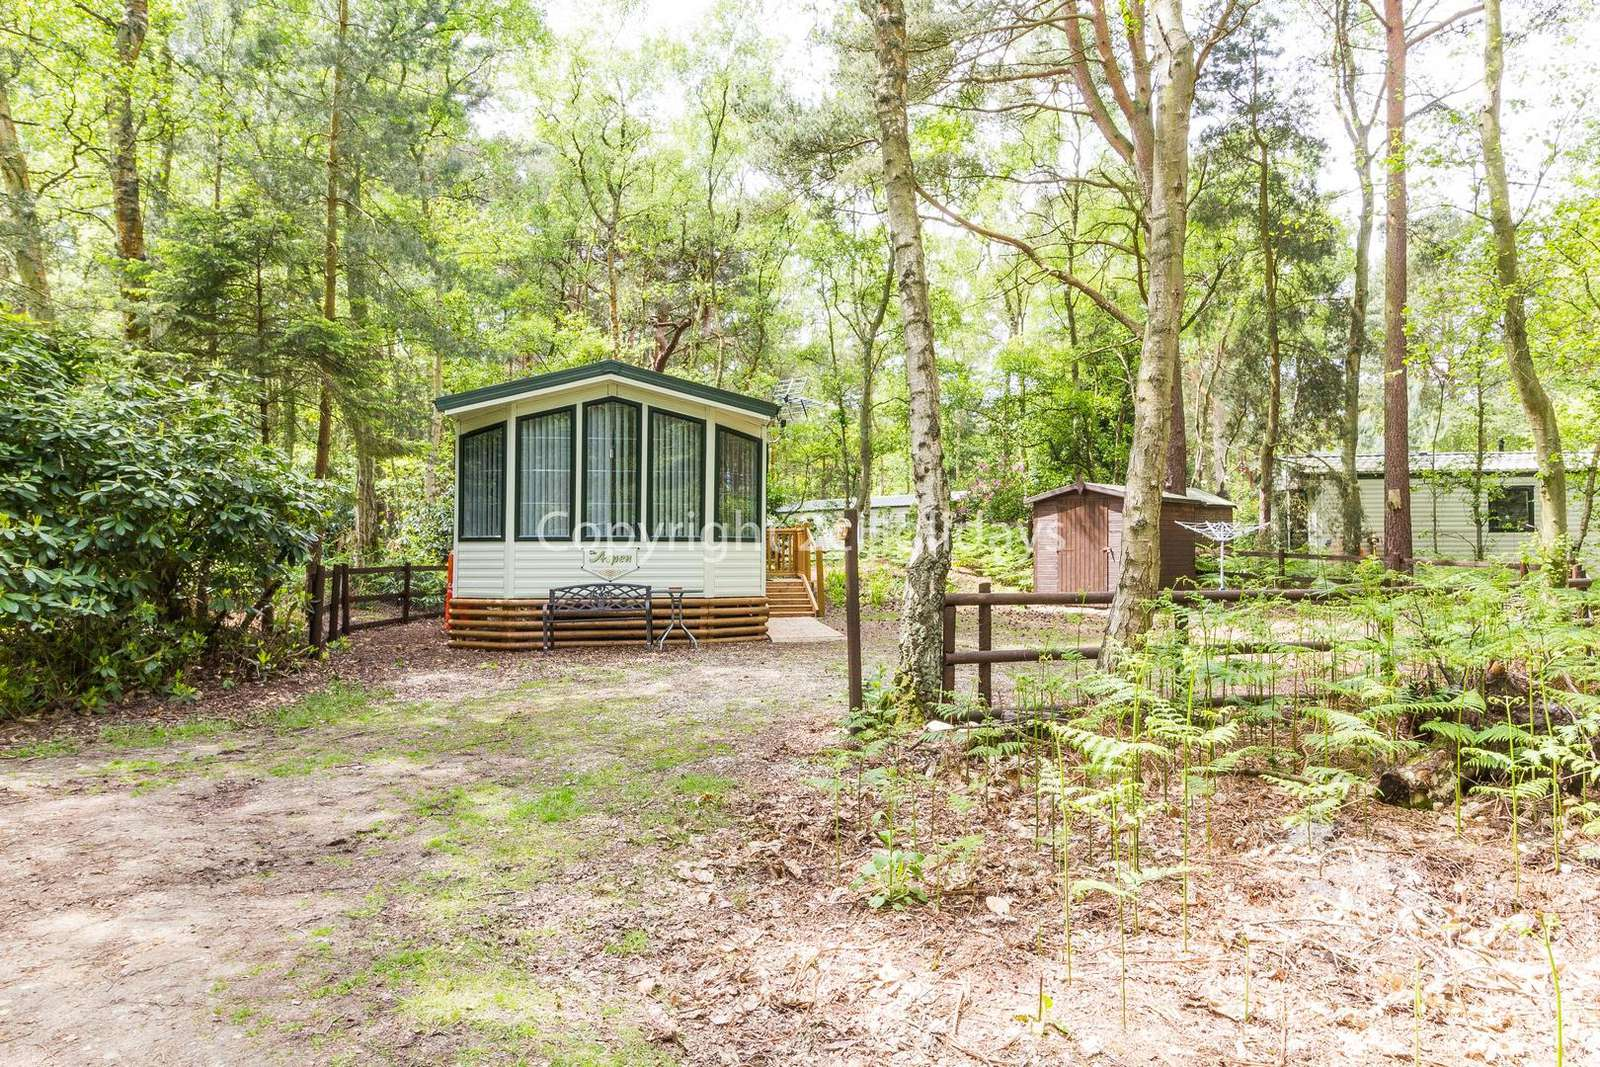 6 berth accommodation with a fantastic woodland view!